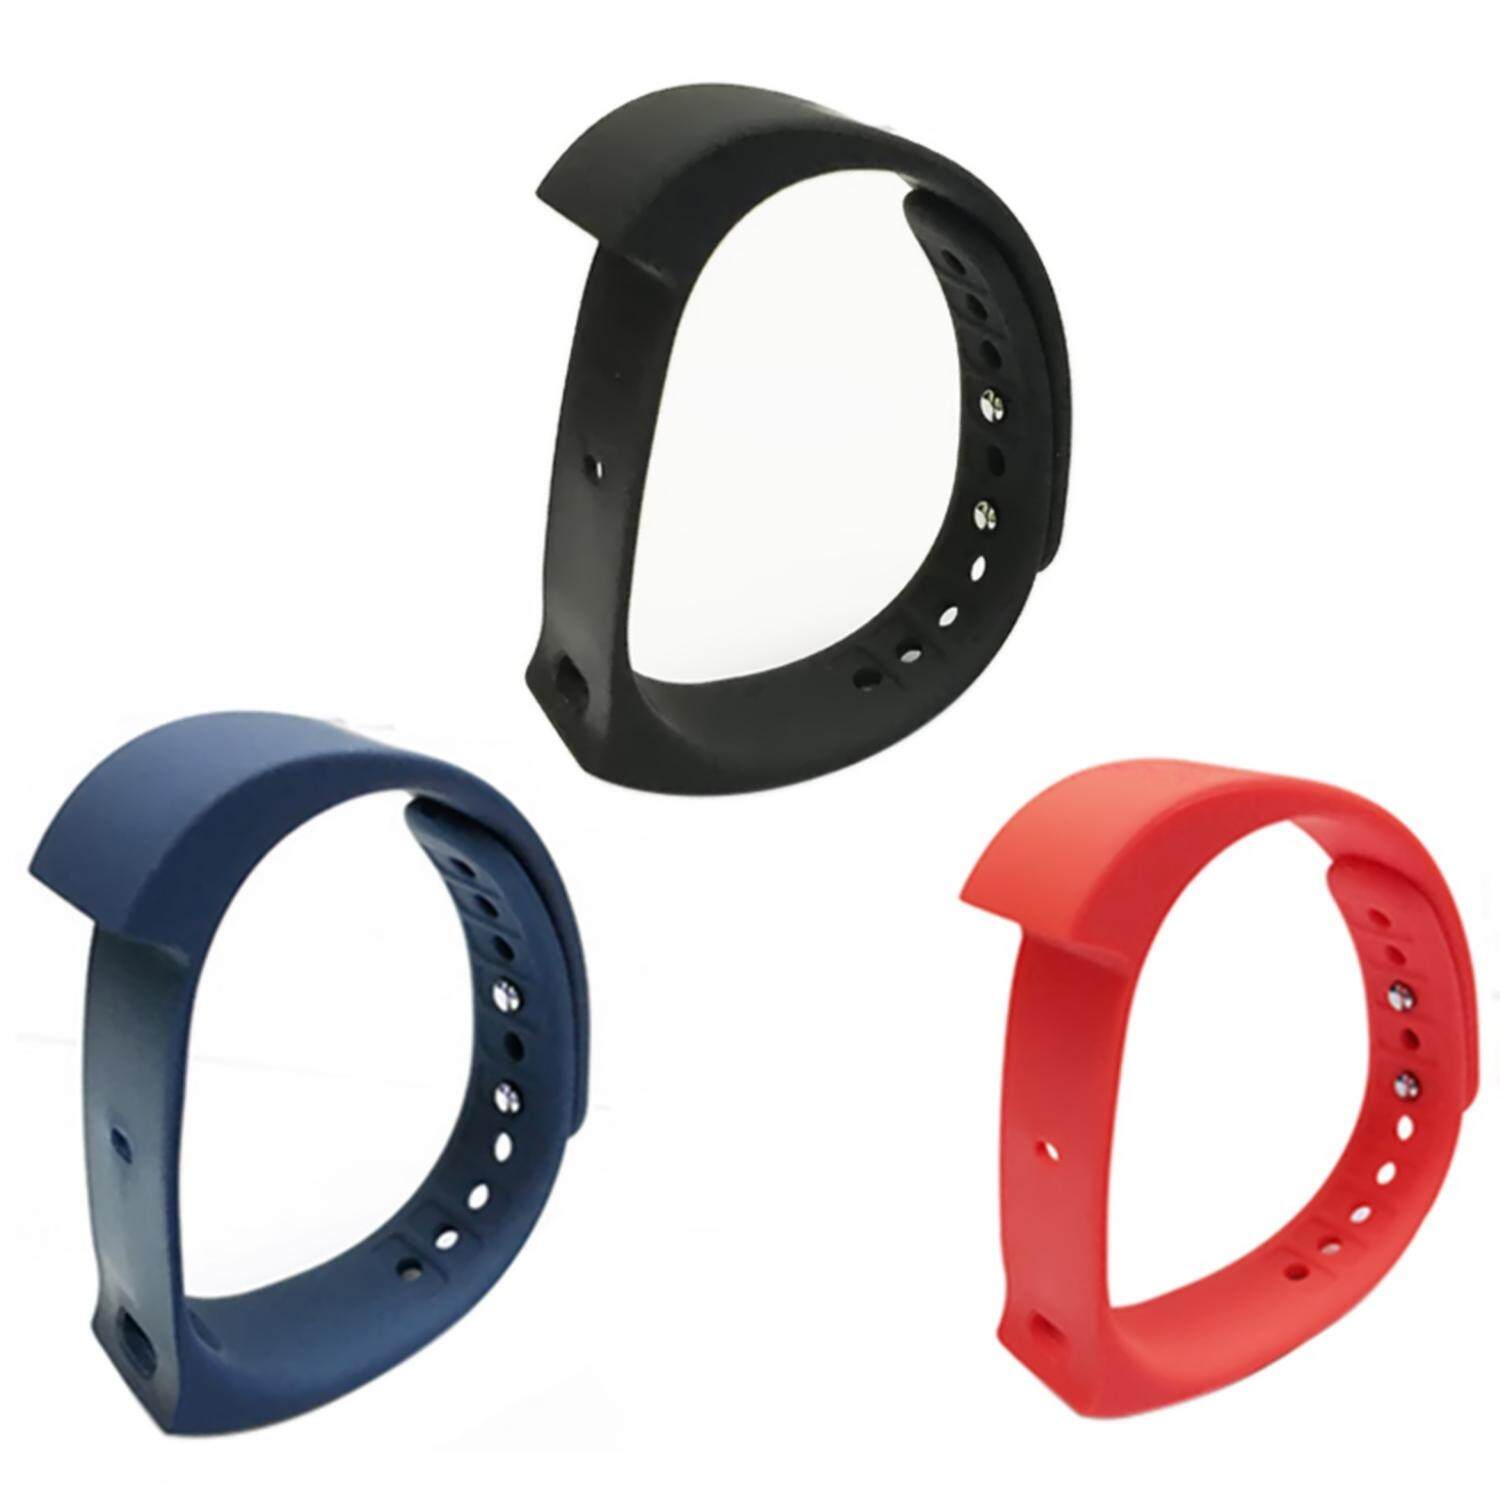 woppk 3Pcs Original Replacement IWown I5 Plus Strap Black Blue And Red - intl